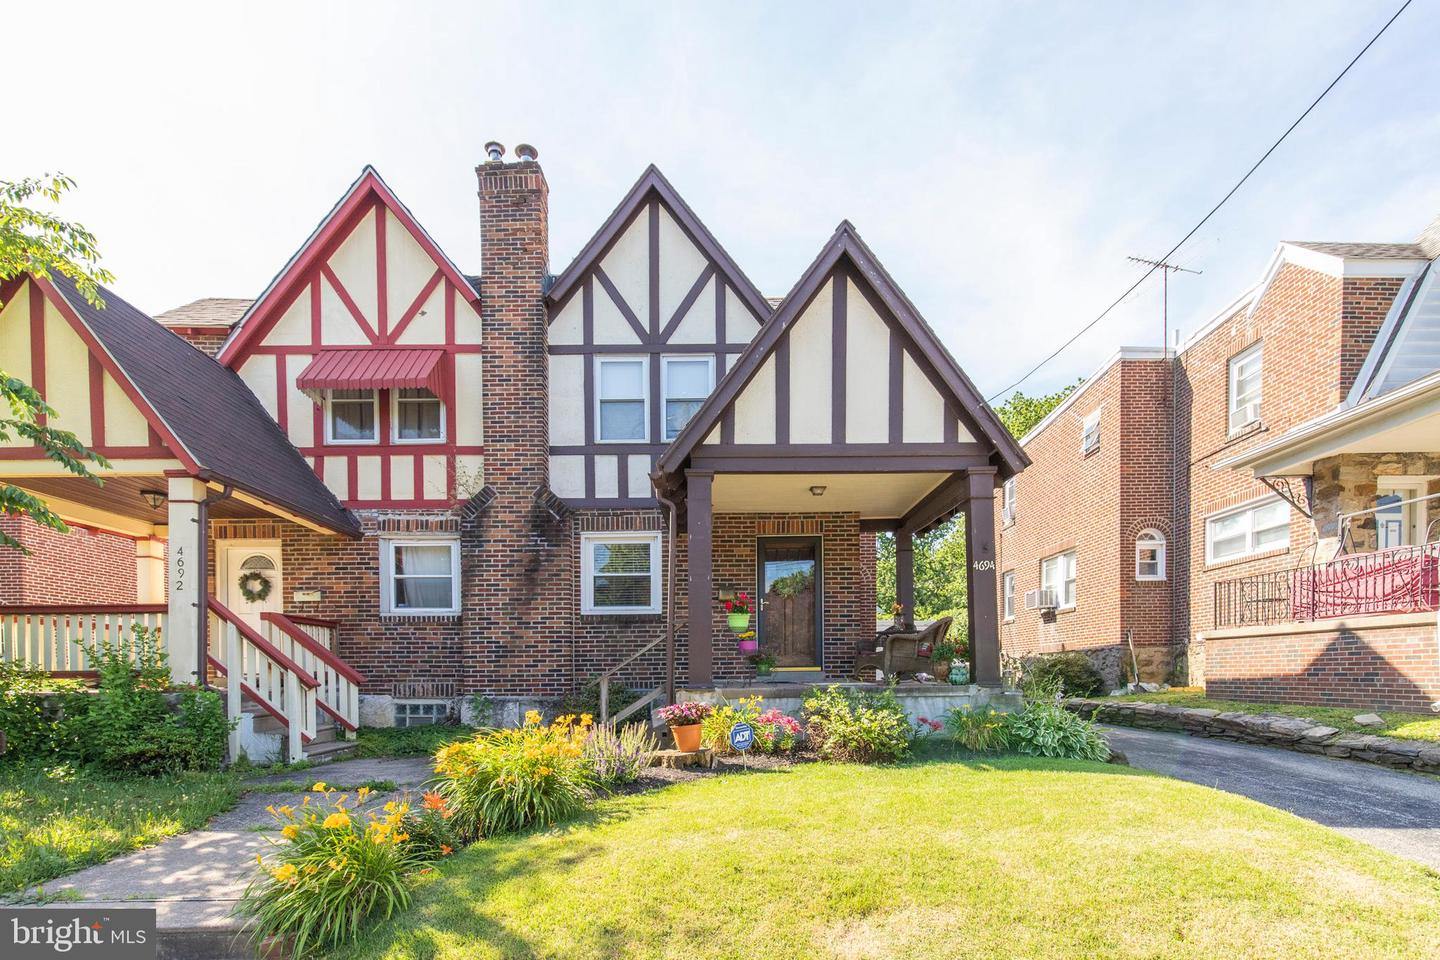 4694 State Road Drexel Hill, PA 19026